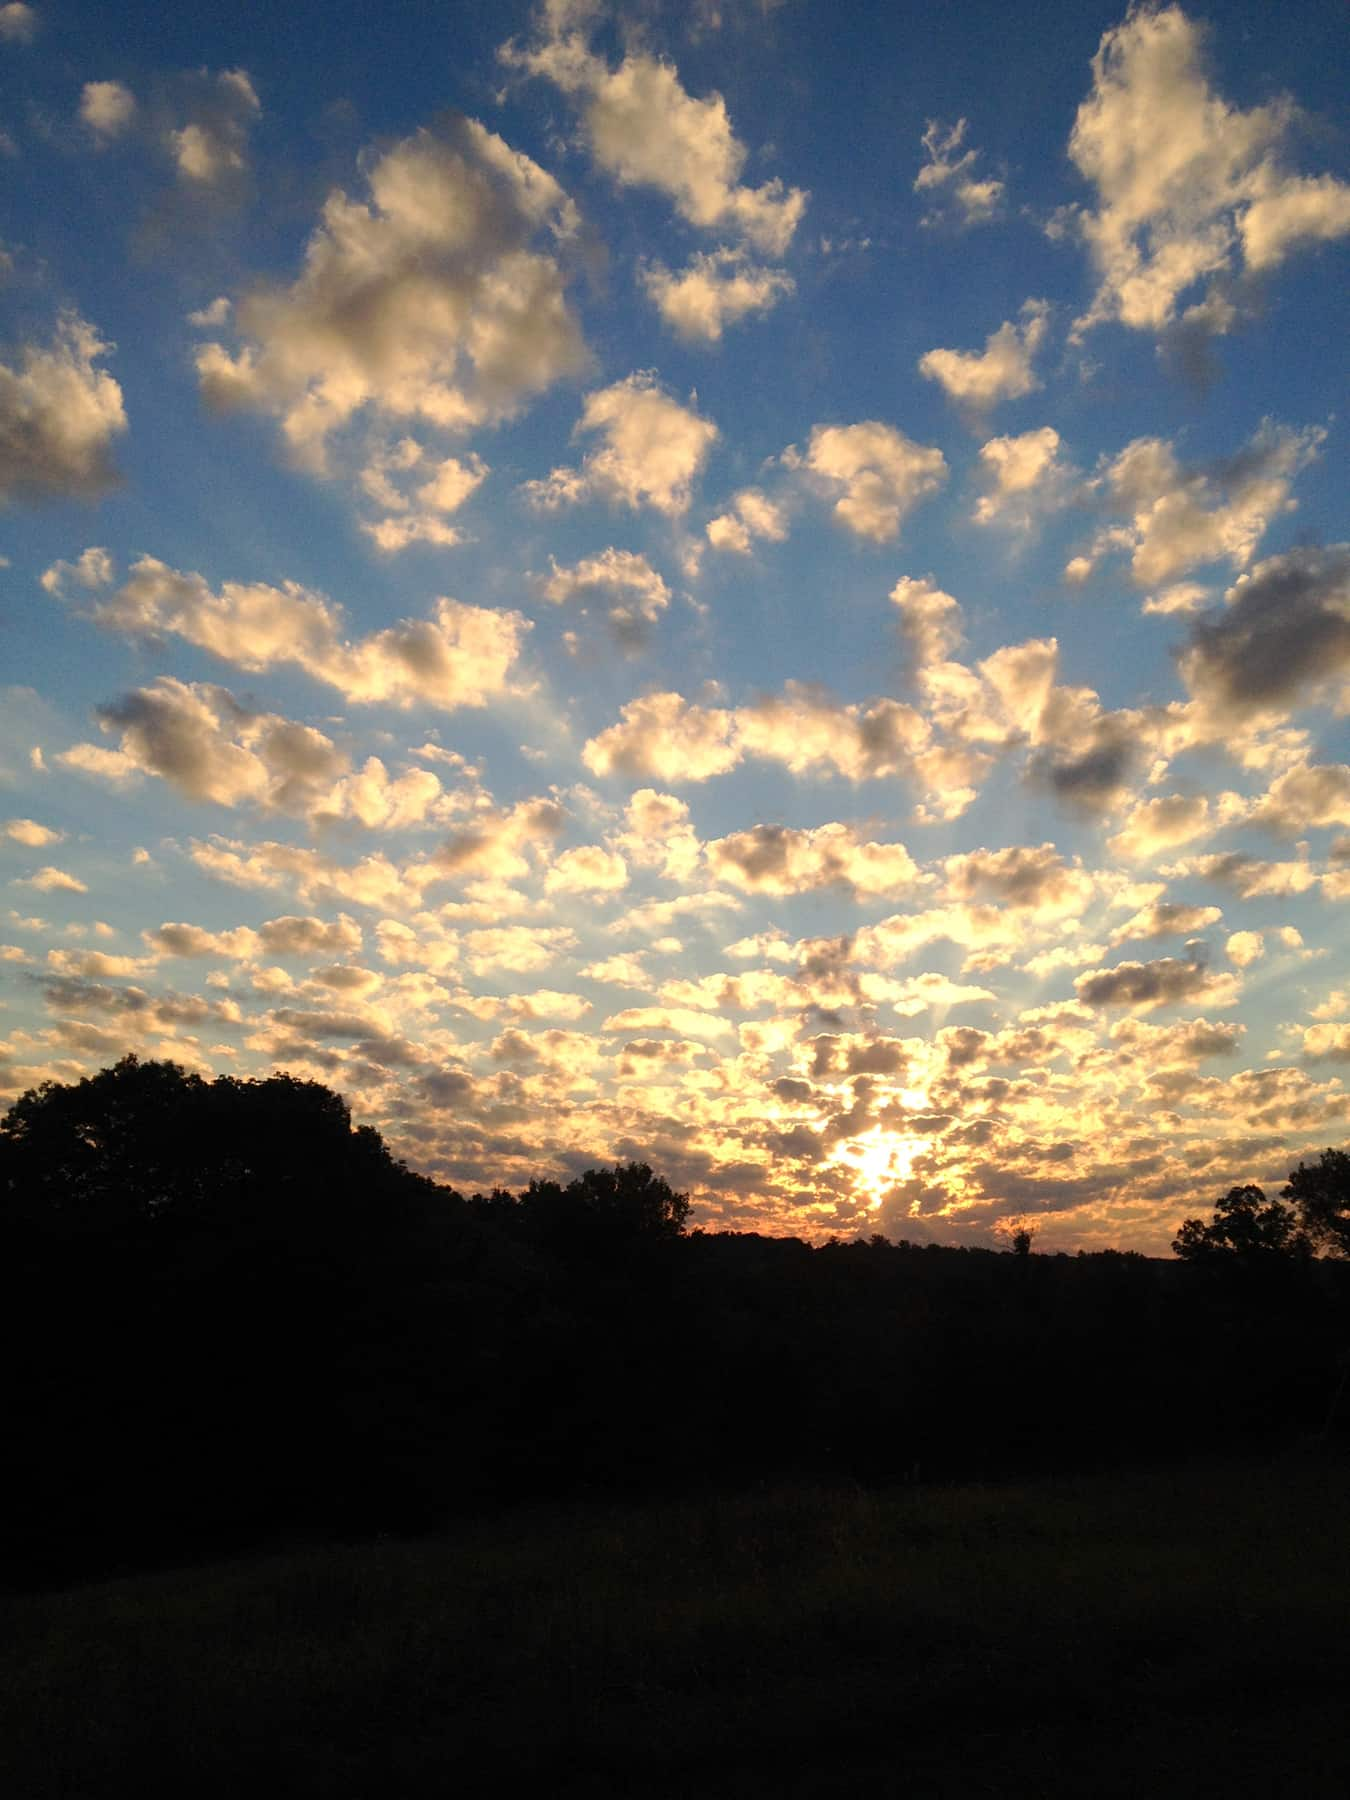 Sunrise over a sky dotted with clouds.